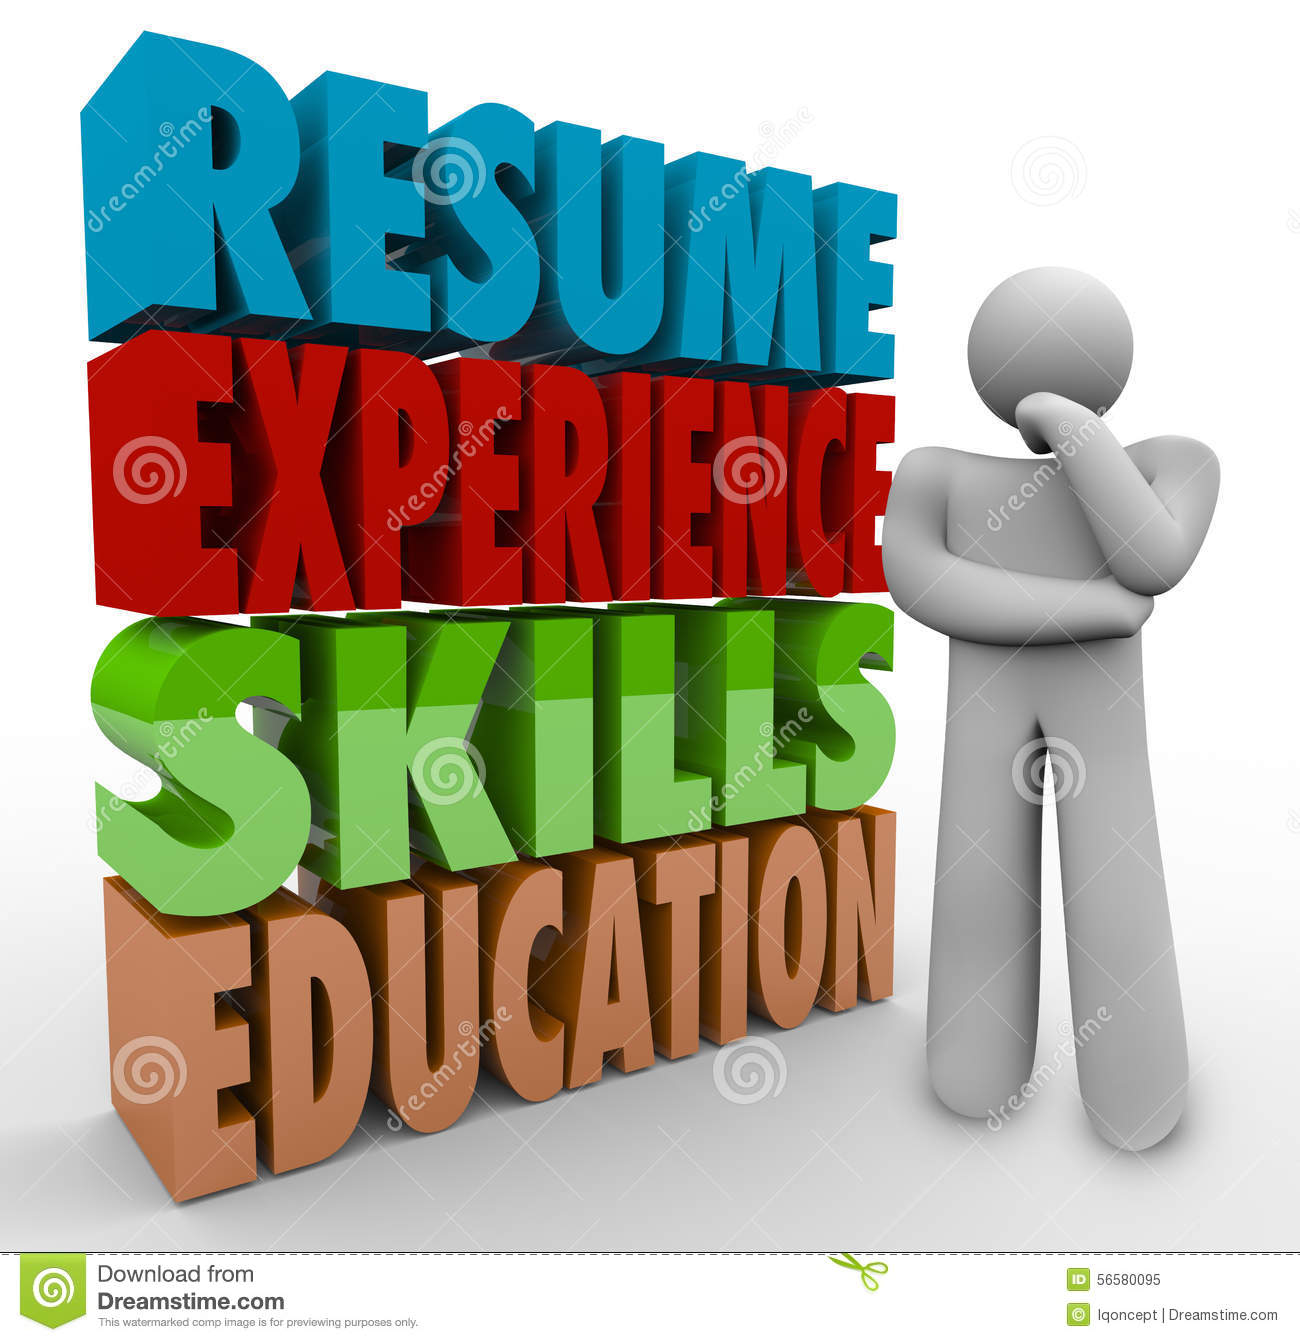 skills experience Think about the skills and experience you have gained through your academic studies, achievements, extra-curricular activities, gap year experience, interests, personal life, sport, voluntary work and work experience.